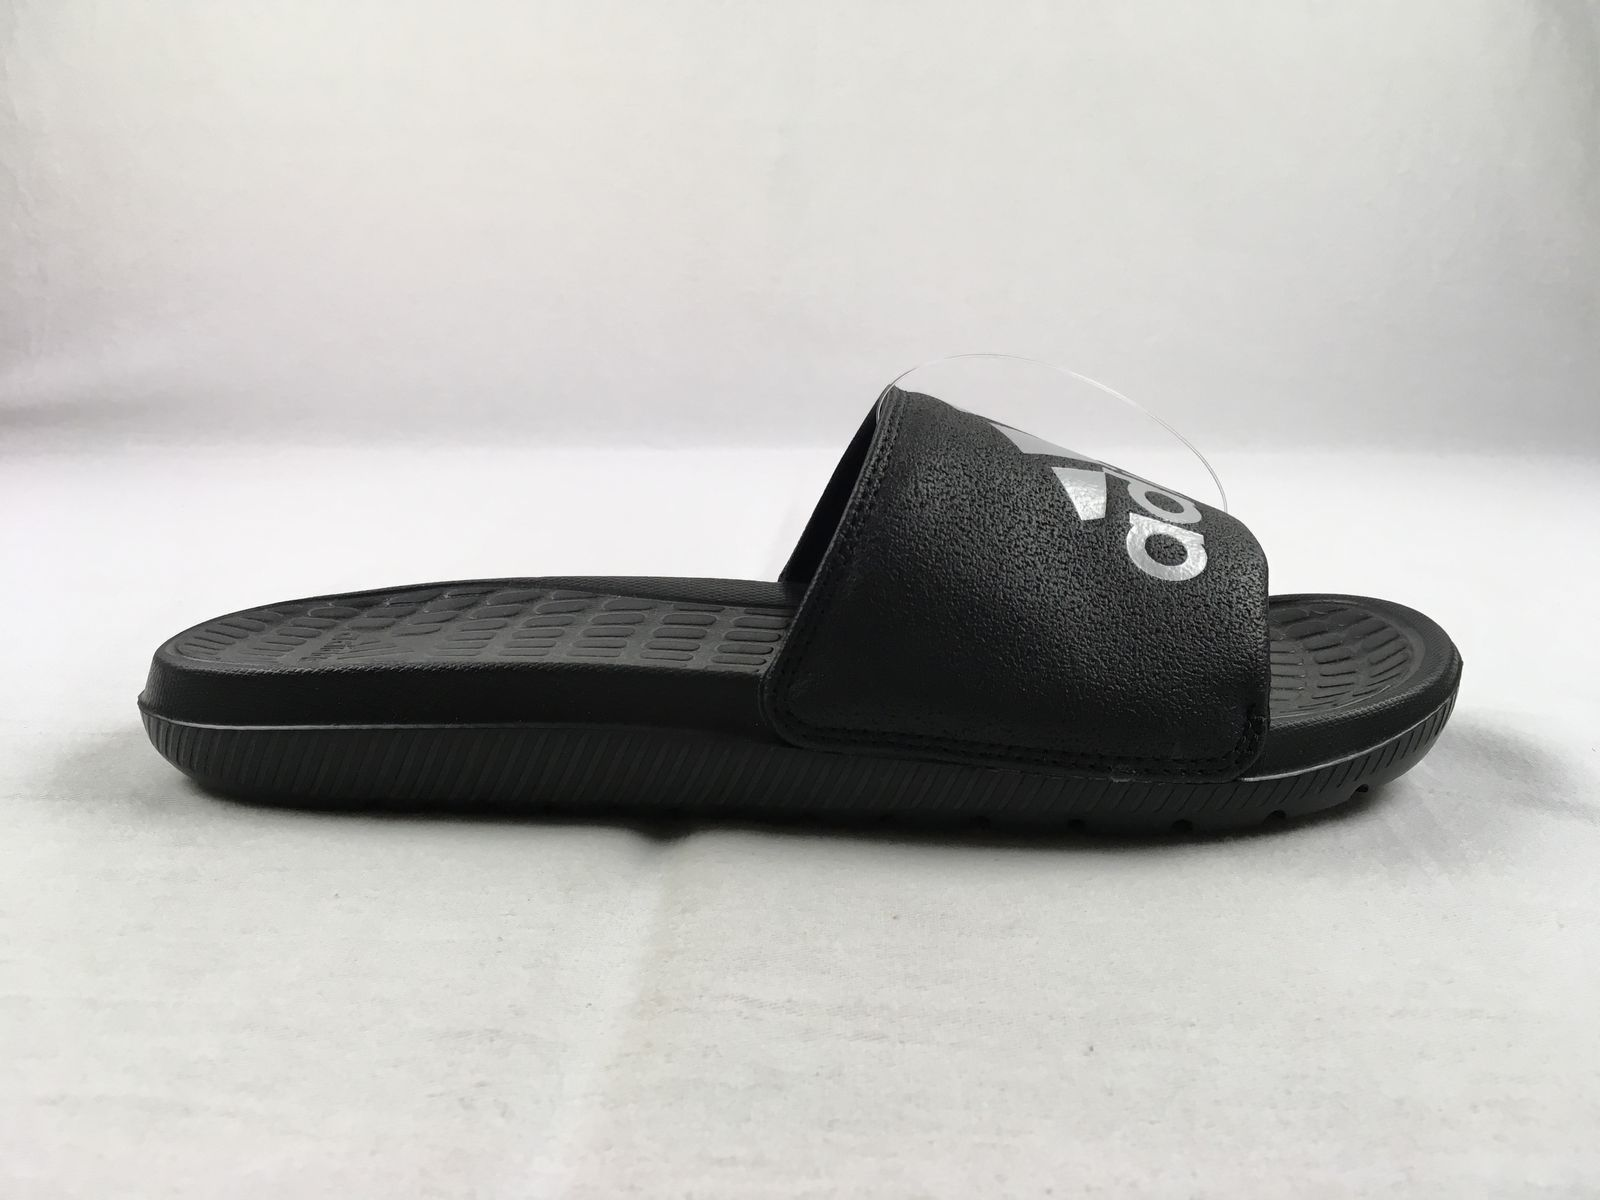 d898717c72b5 NEW adidas Voloomix - Black Sandals   Flip Flops (Men s 8 ...